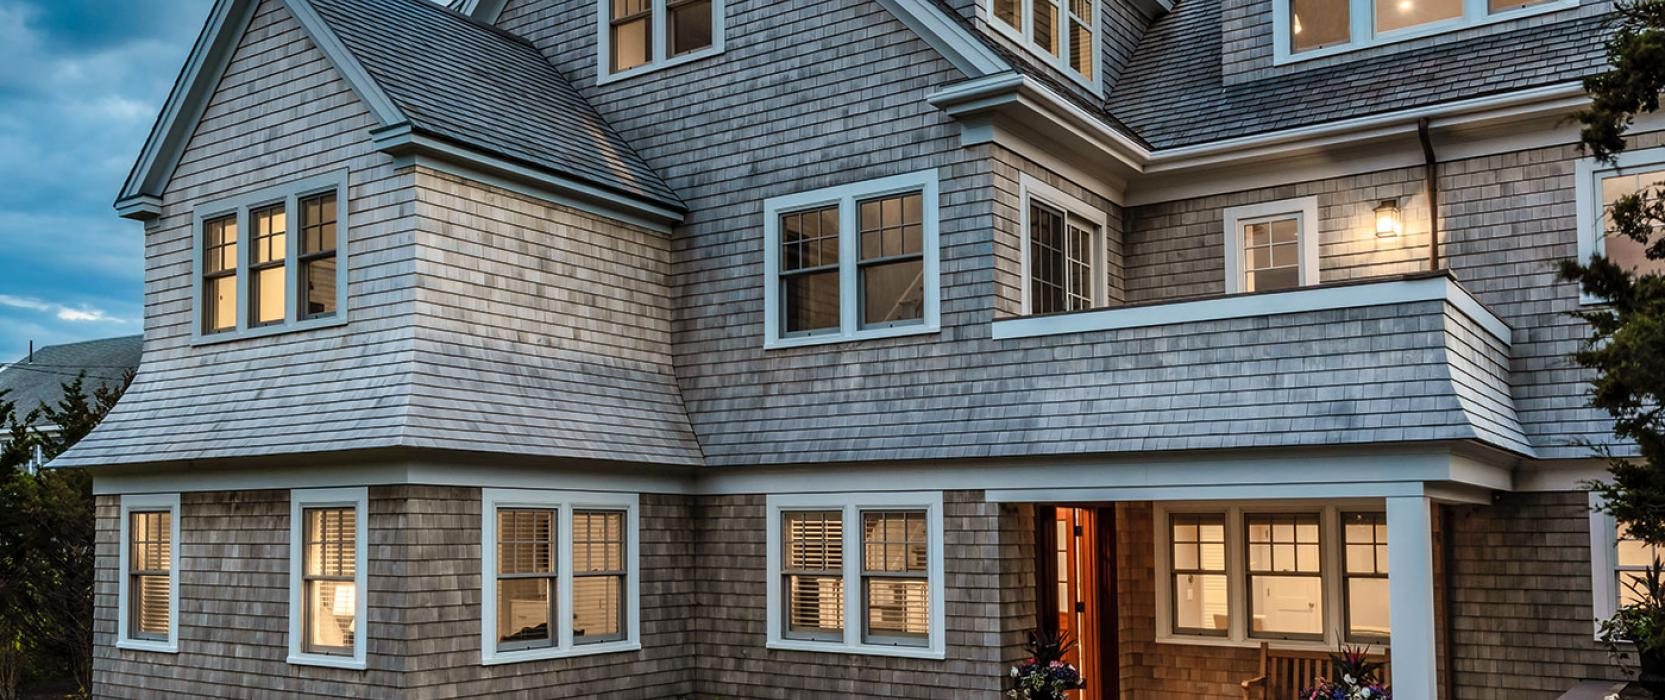 Shingle Style Summer Home